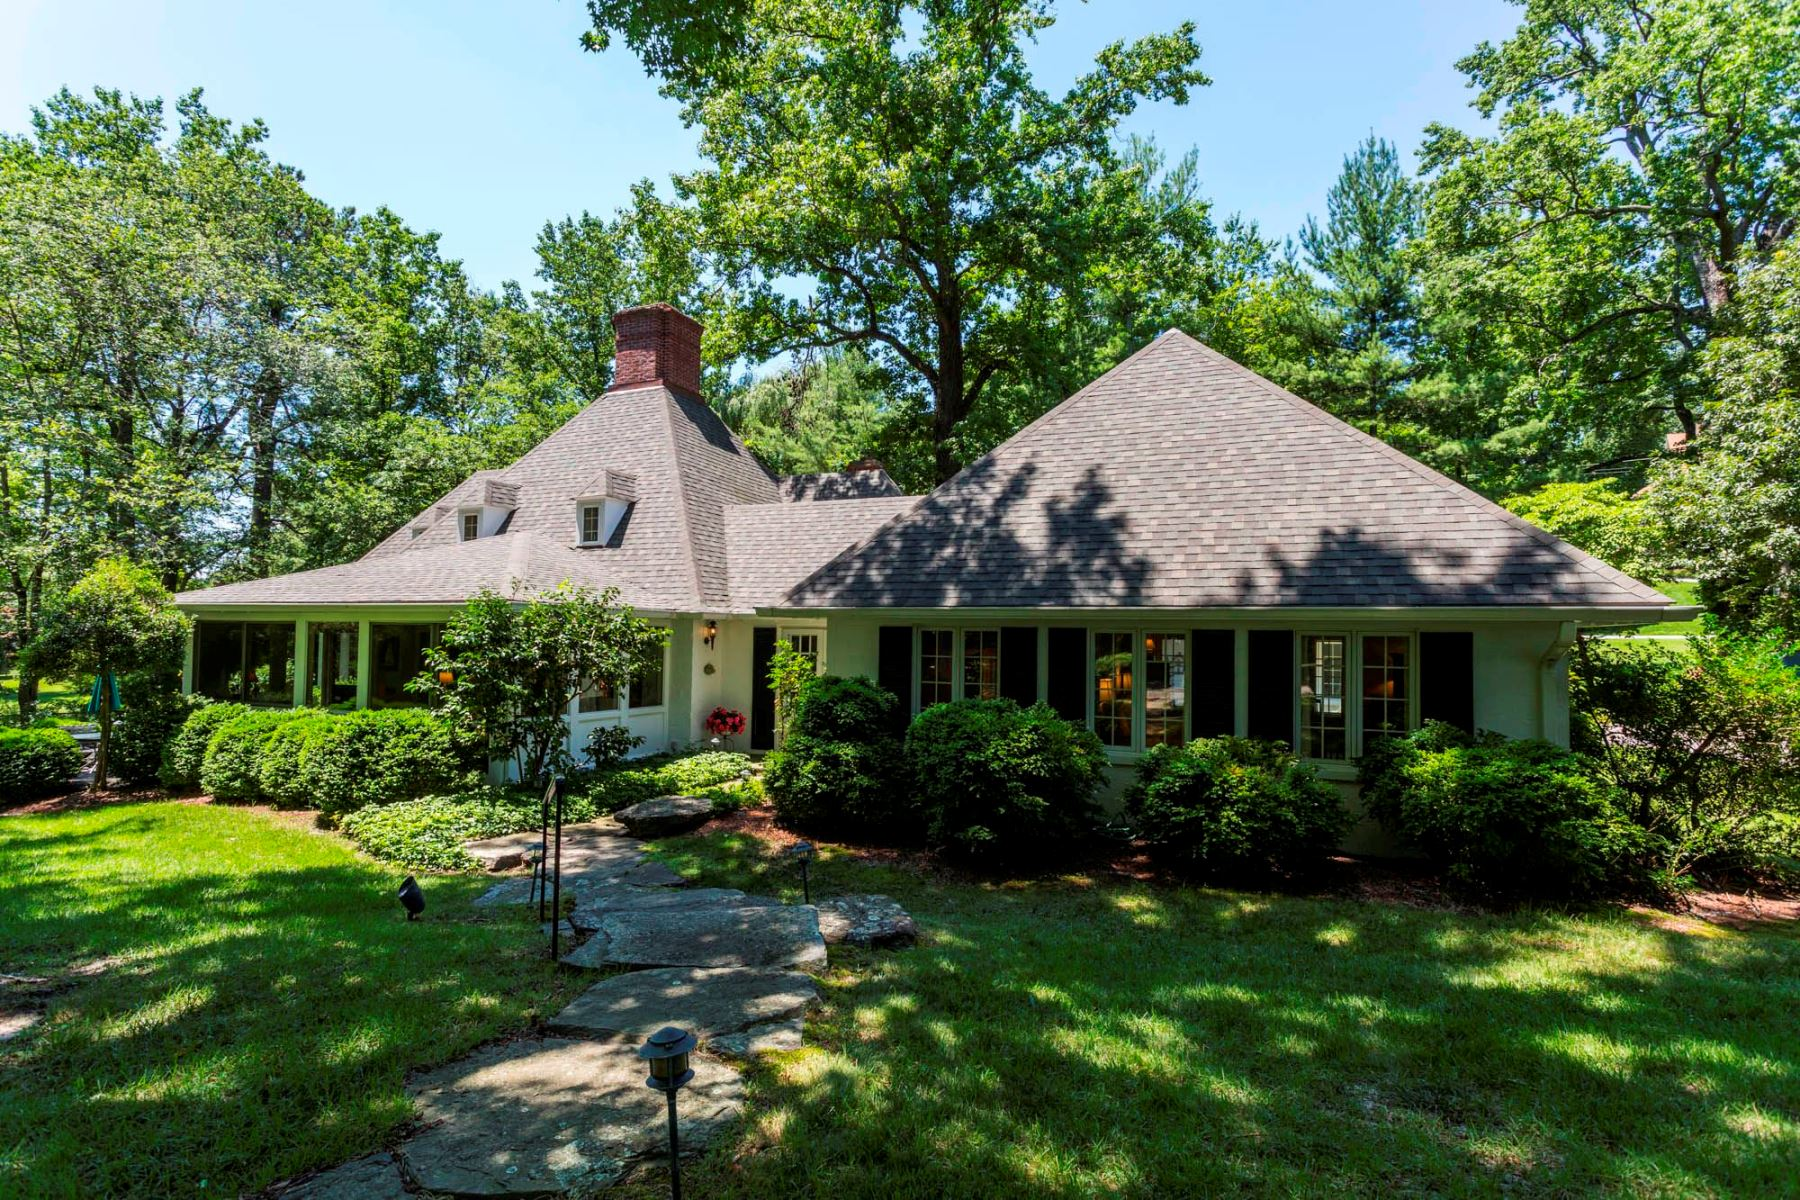 Single Family Home for Sale at 608 Kerry Beacon, Gibson Island 608 Kerry Beacon Rd Gibson Island, Maryland 21056 United States